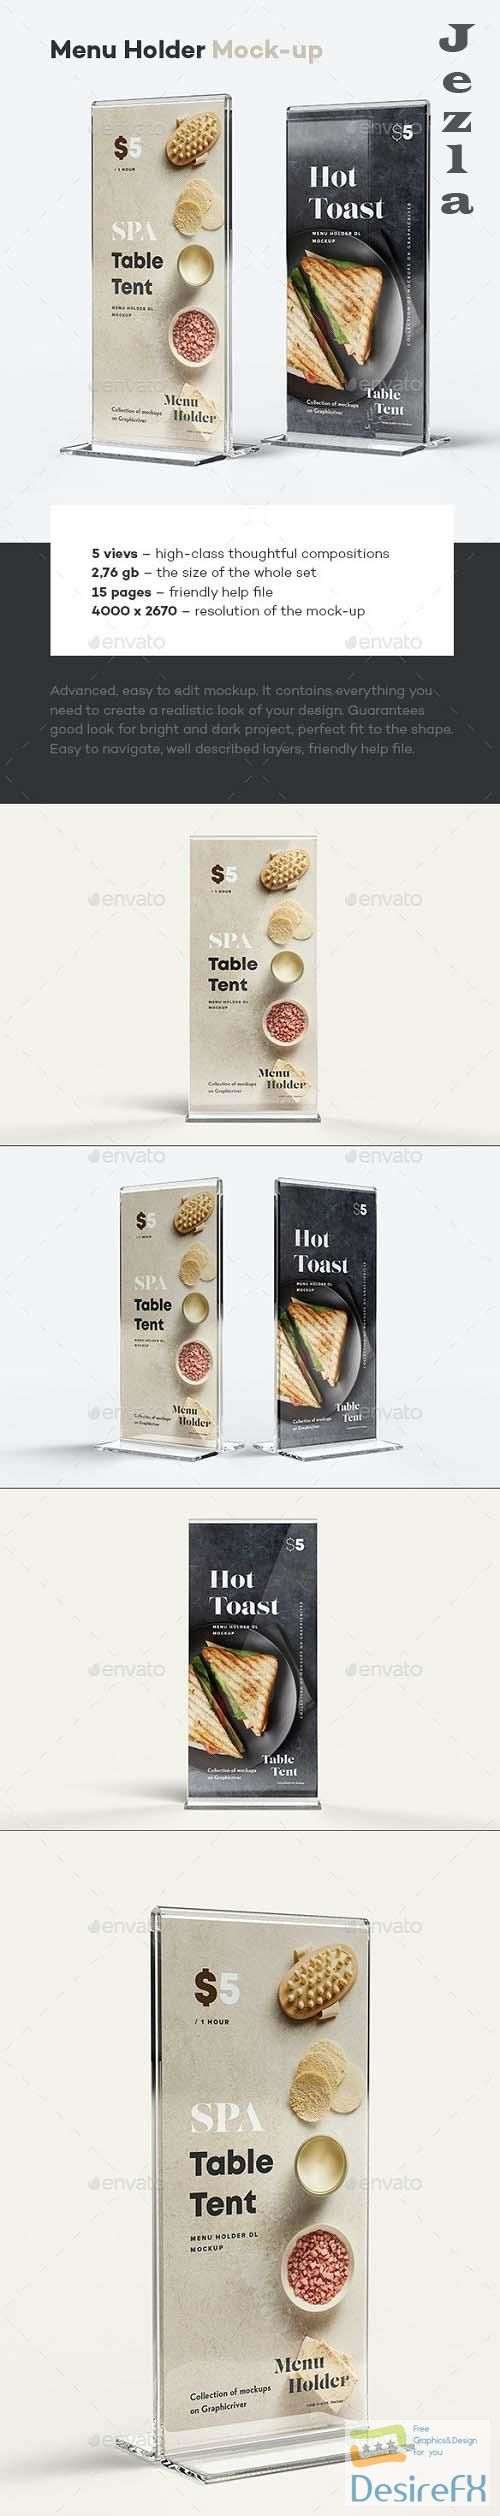 GraphicRiver - Menu Holder Mock-up 29894381